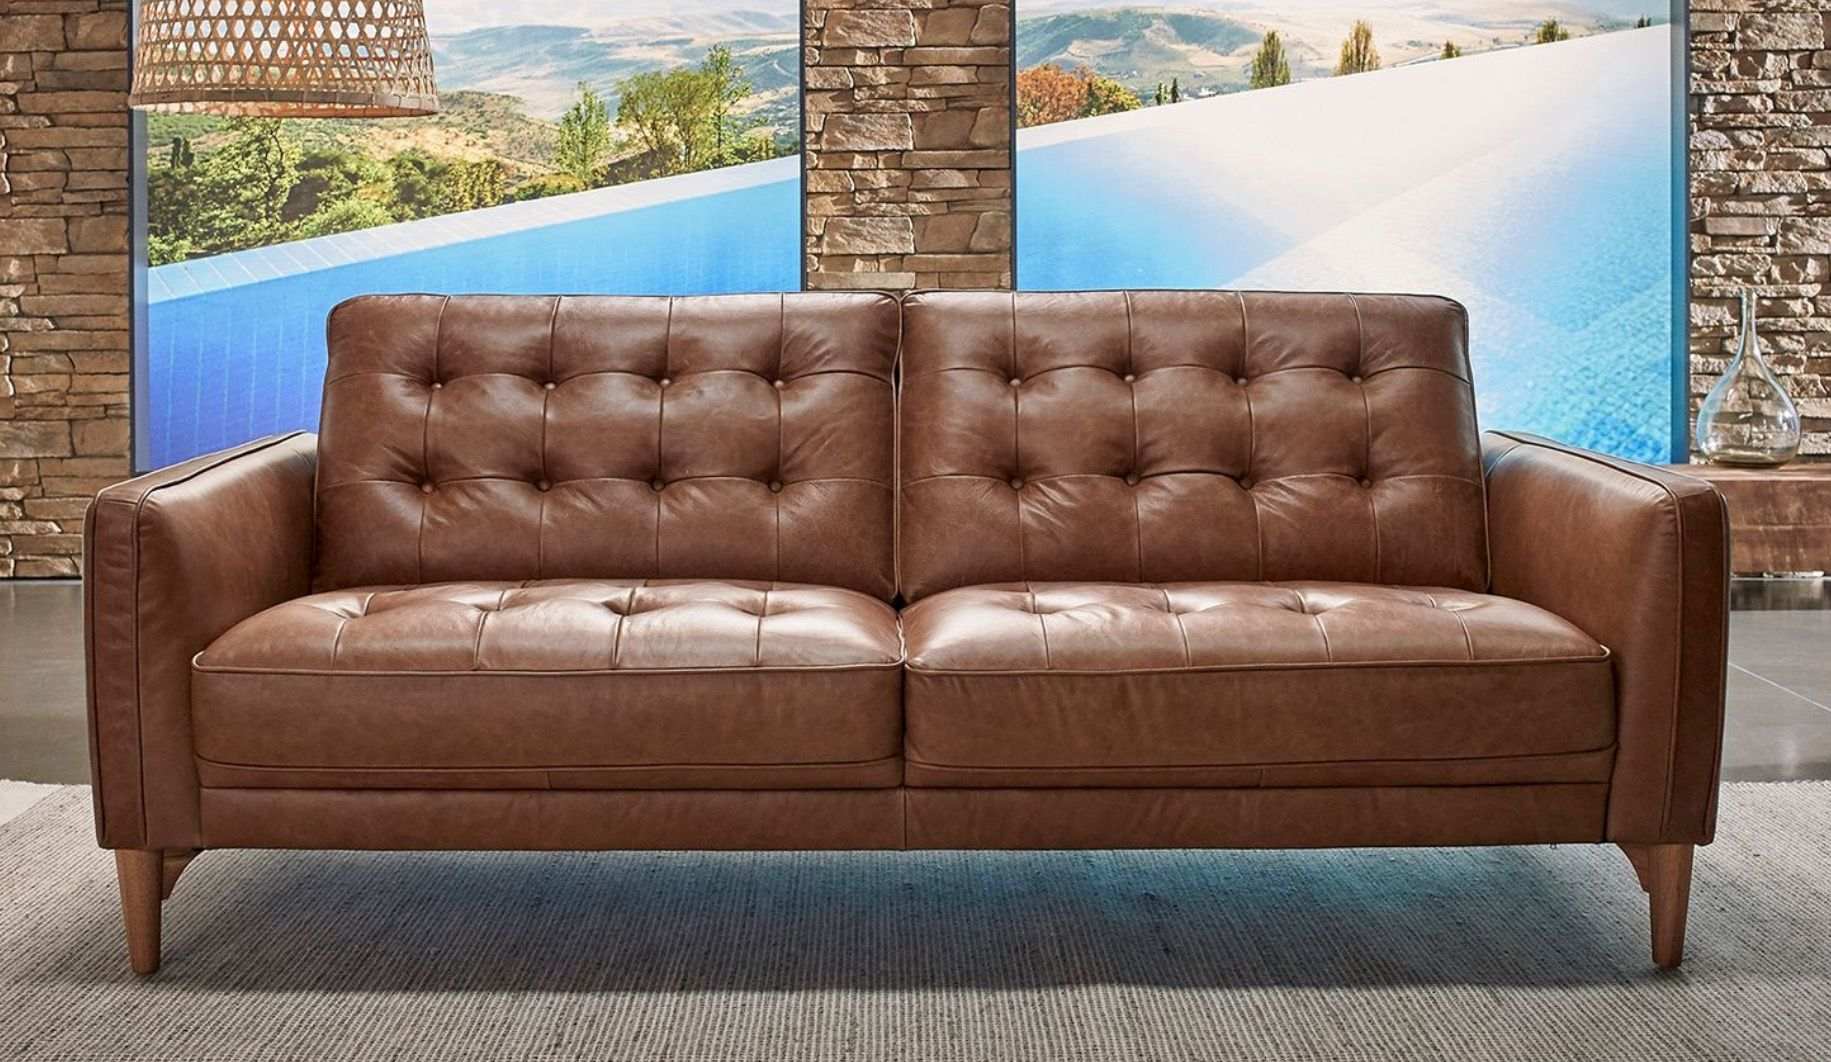 Josie By Nick Scali Two And Two And Half Seater Small Range Of